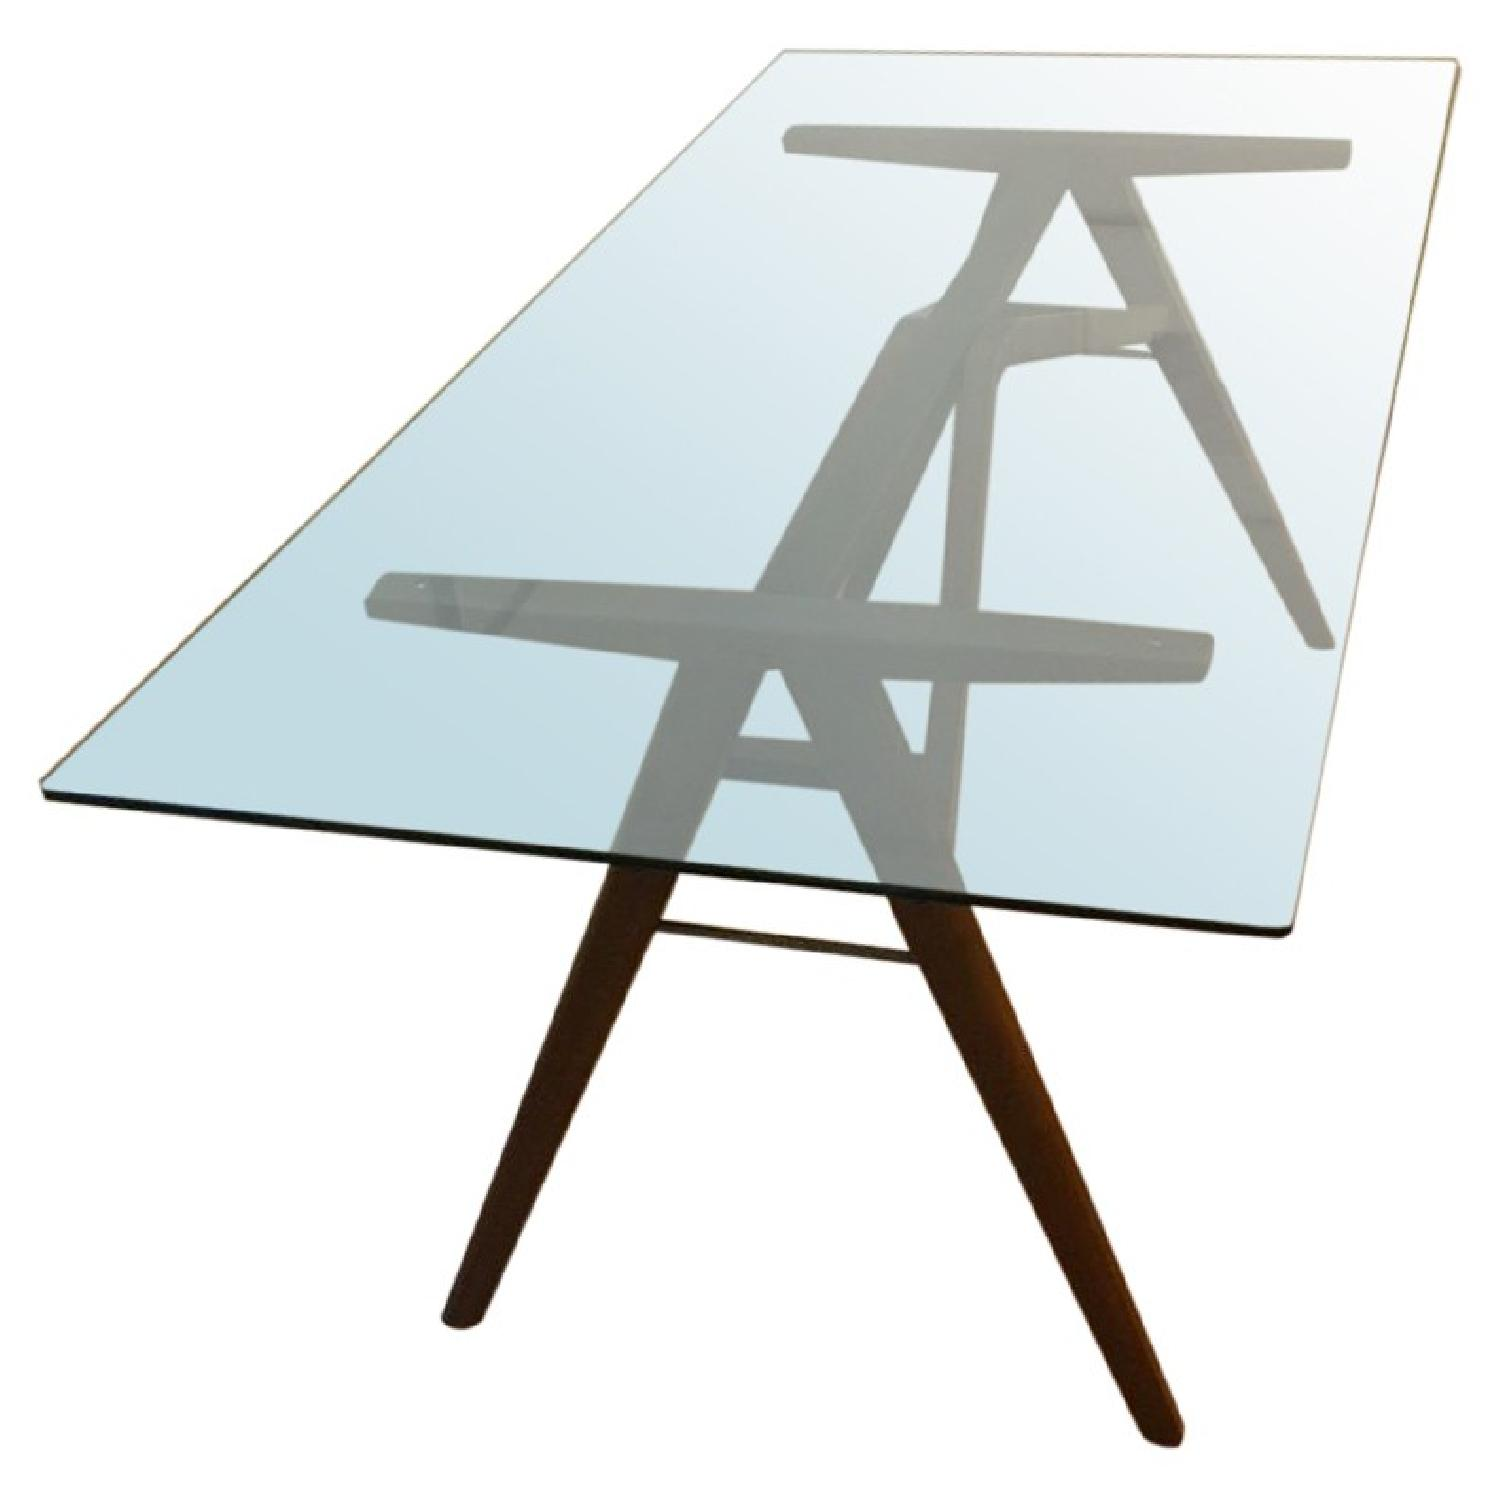 West Elm Modern Glass & Walnut-Stained Dining Table - image-0